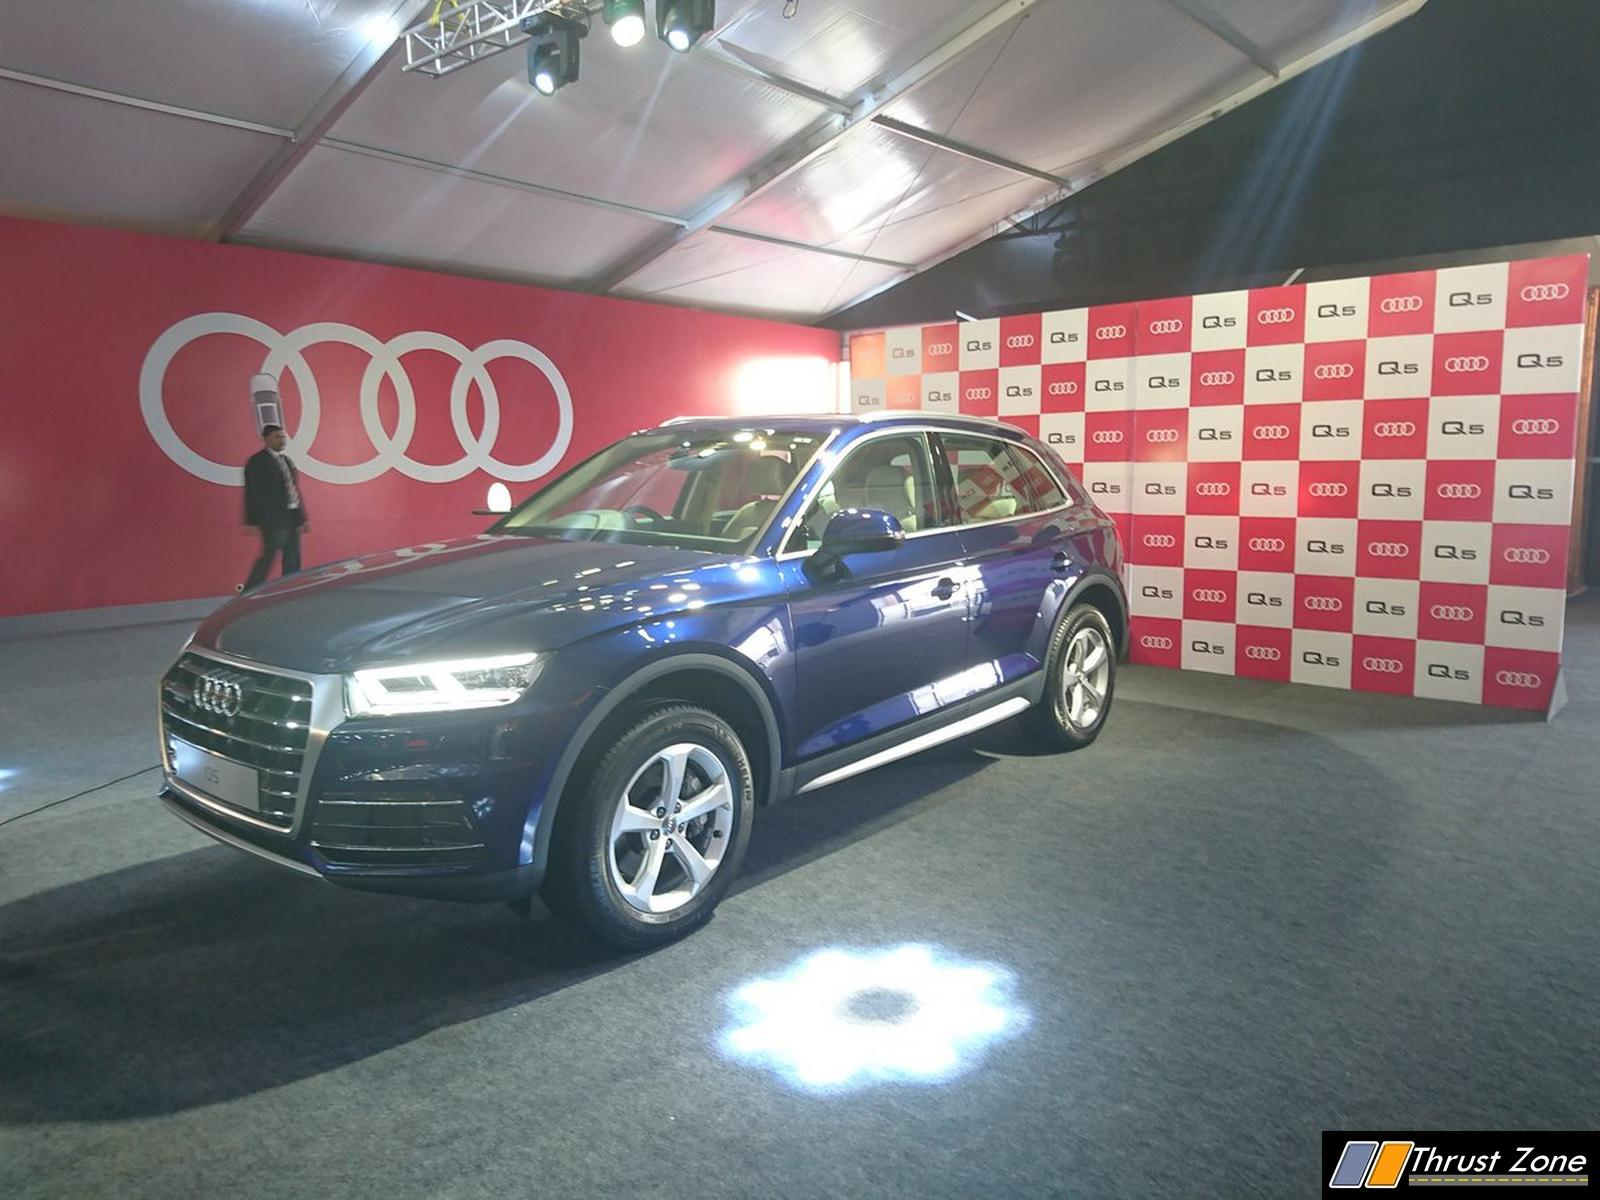 https://www.thrustzone.com/wp-content/uploads/2016/09/Second-Generation-2017-Audi-Q5-Launched-in-India-5.jpg